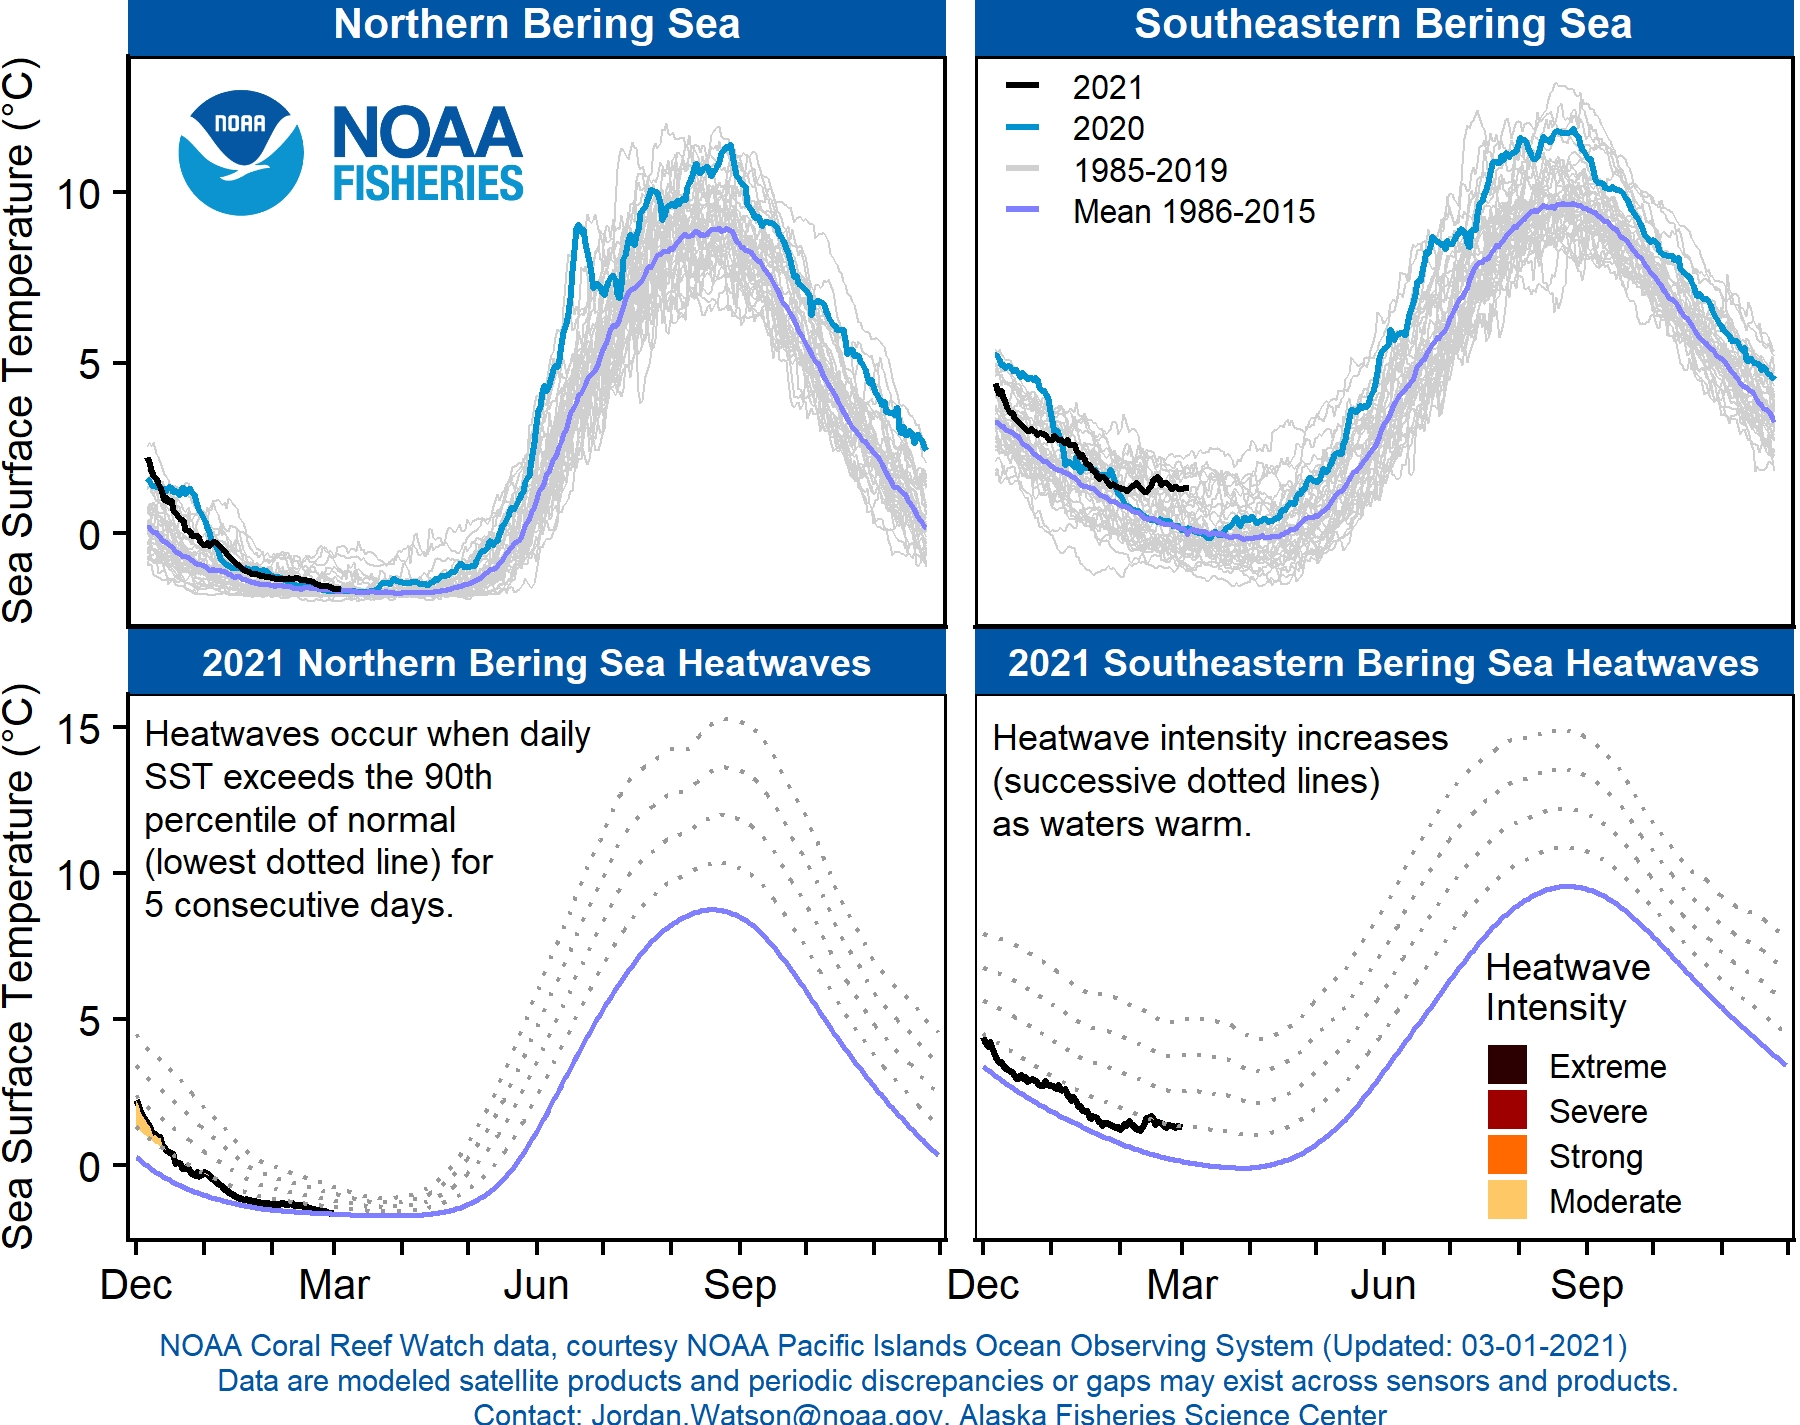 Four panel graph showing comparisons of mean sea surface temperatures in the northern Bering Sea and Southeastern Bering Sea from 1985-2021.